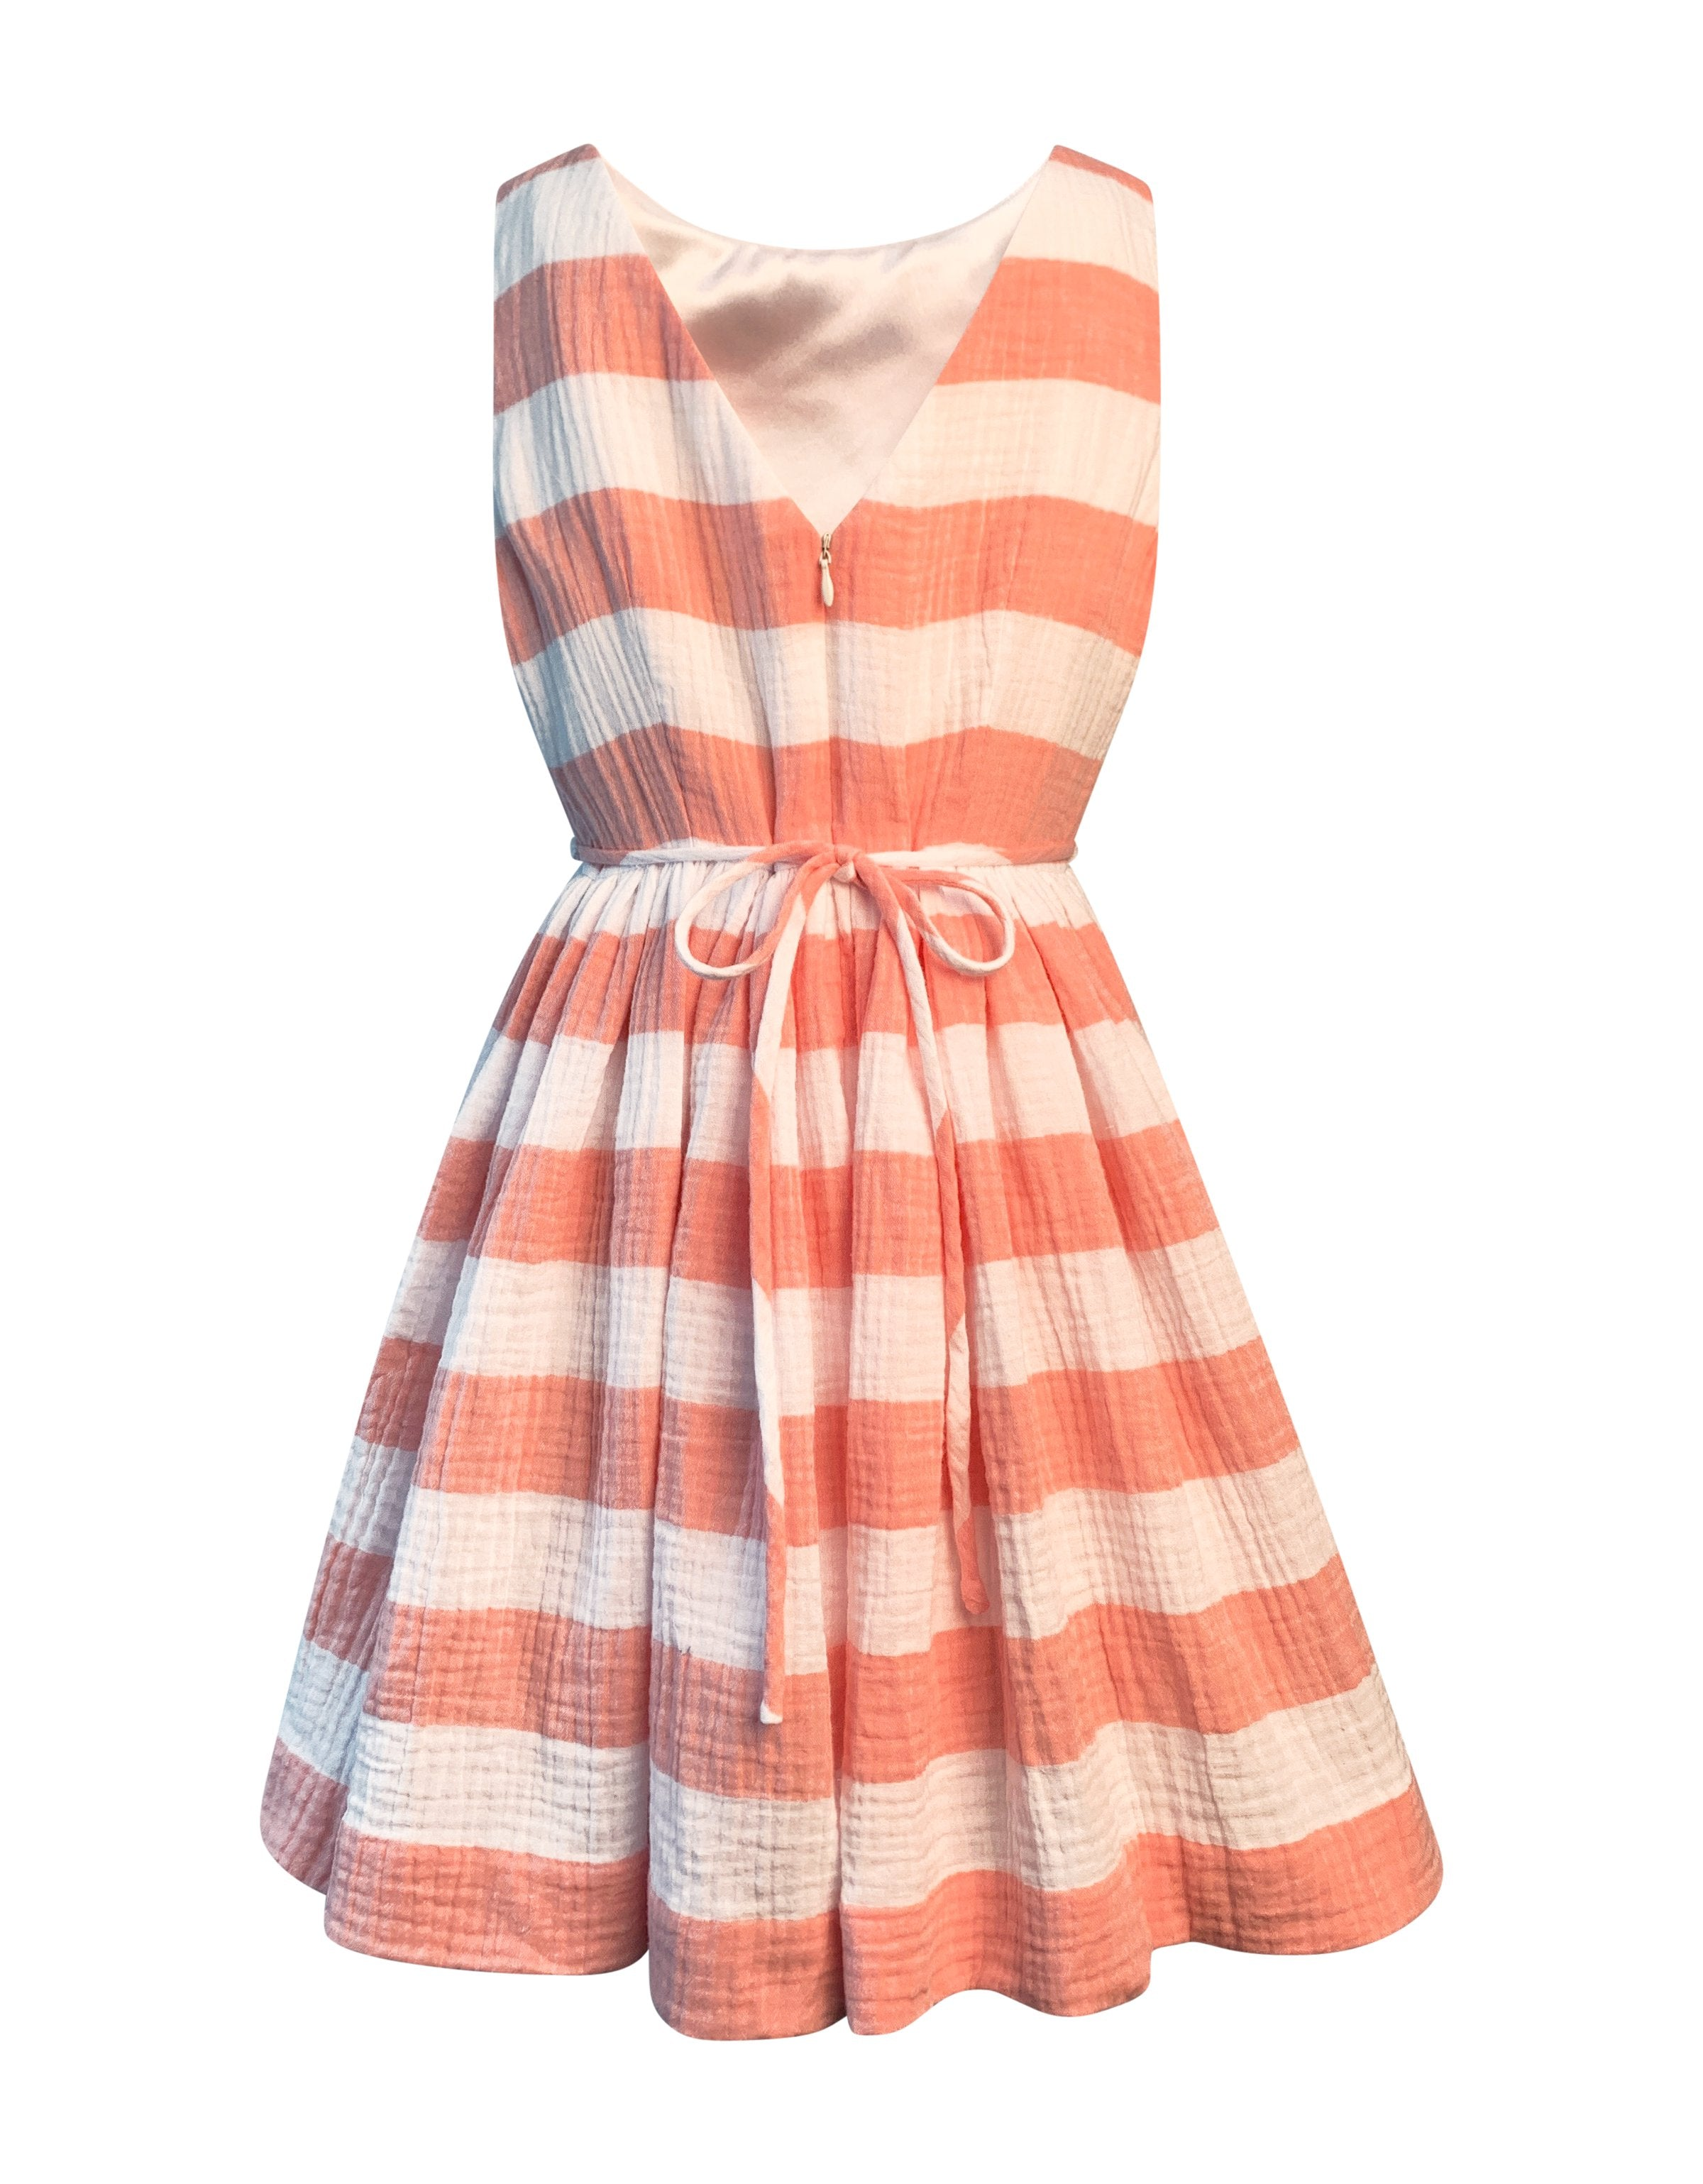 Helena and Harry Girl's Blush Pink and White Horizontal Stripe Cotton Dress